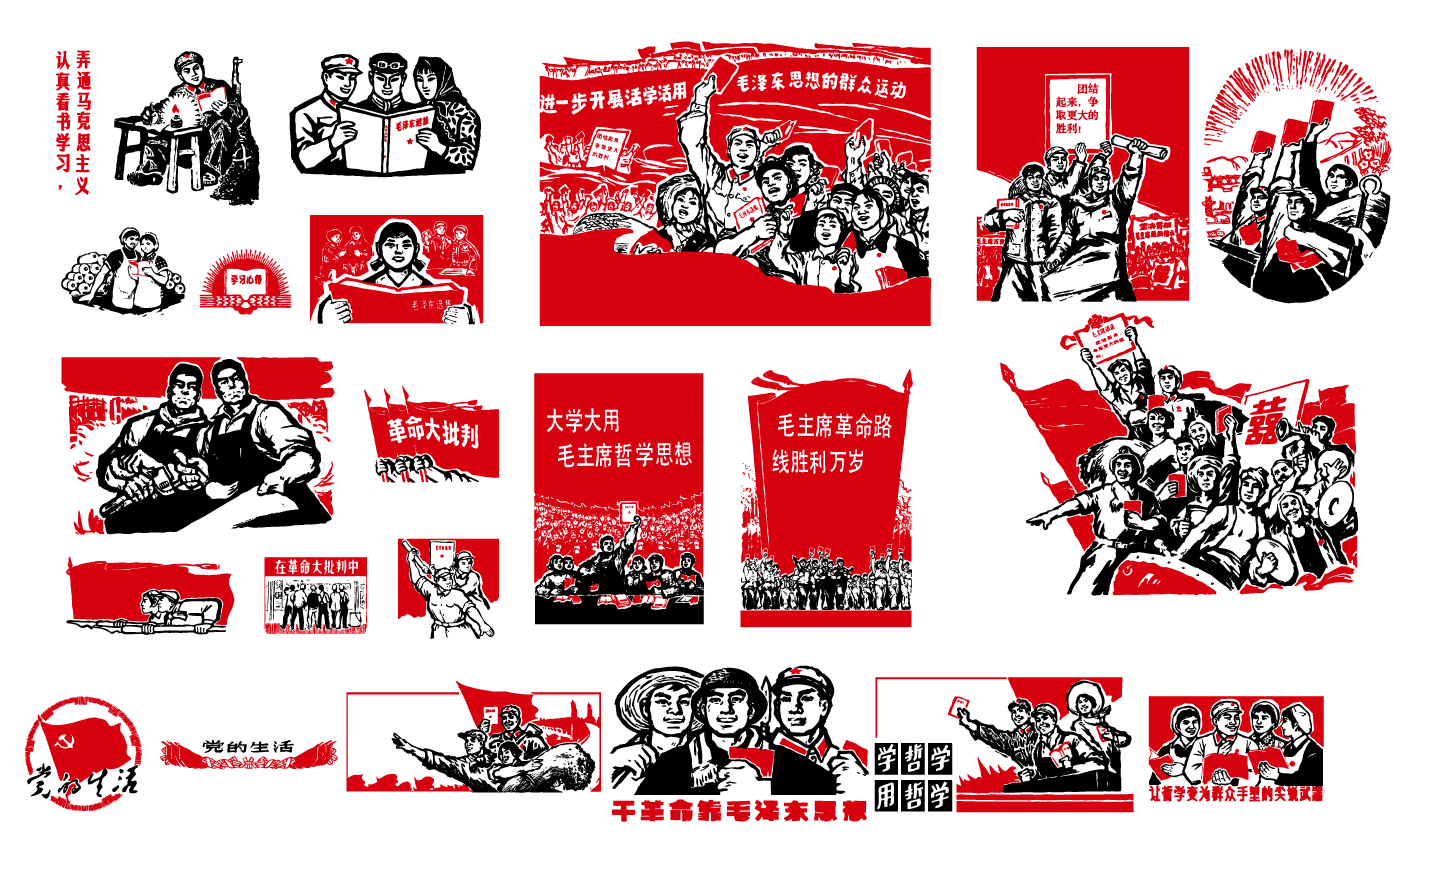 labor is the most glorious - Long live chairman MAO, long live the communist party - China Illustrations Vectors AI ESP